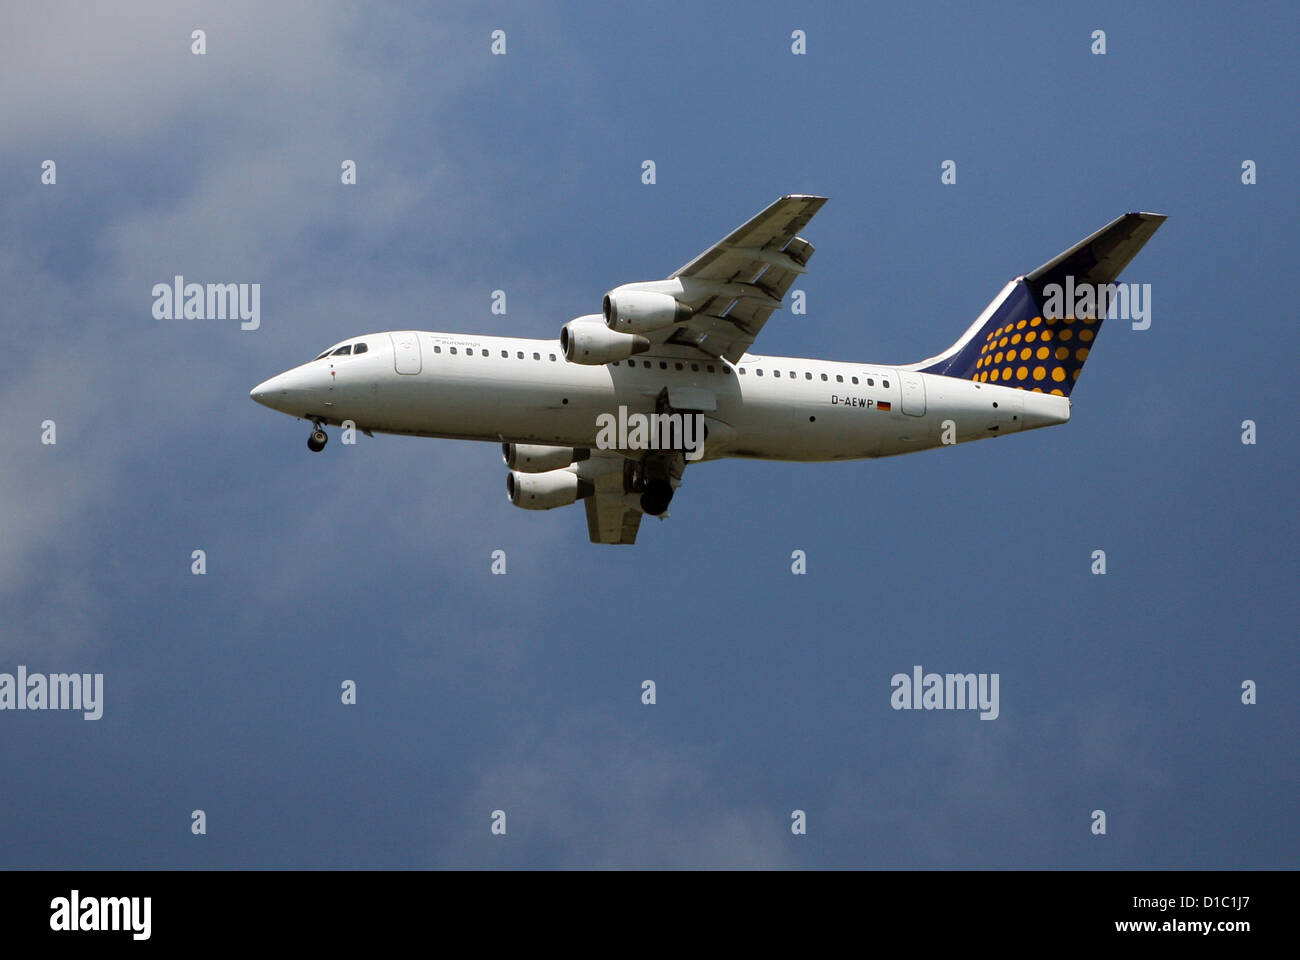 Hanover, Germany, the aircraft will depart € wings in the air - Stock Image